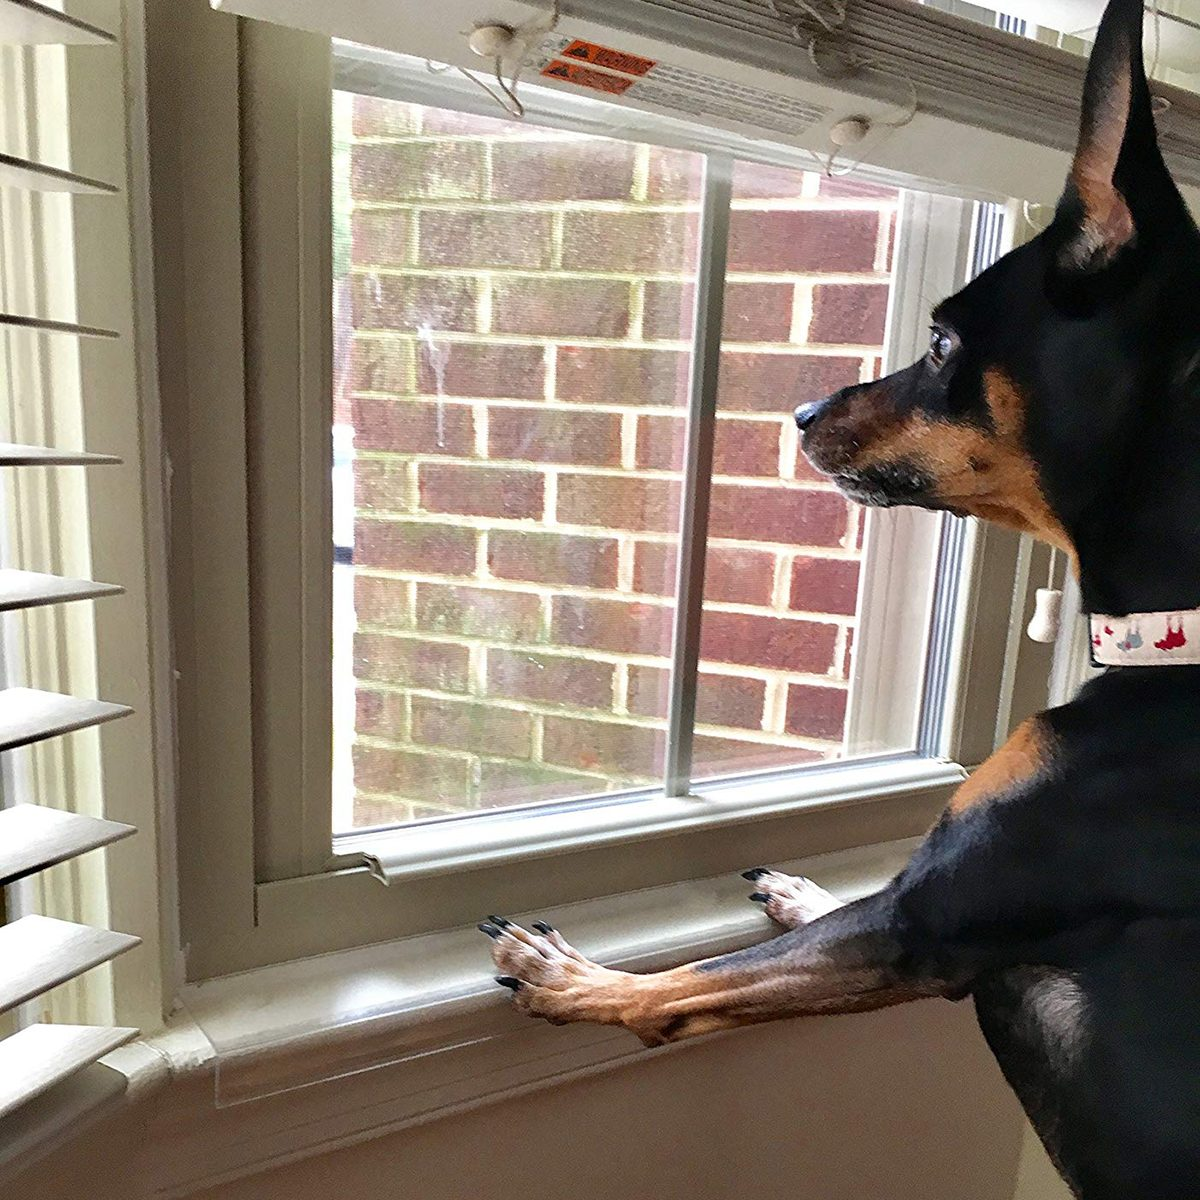 Clear Pet Window Sill Protector - Guards Against Dog Claws